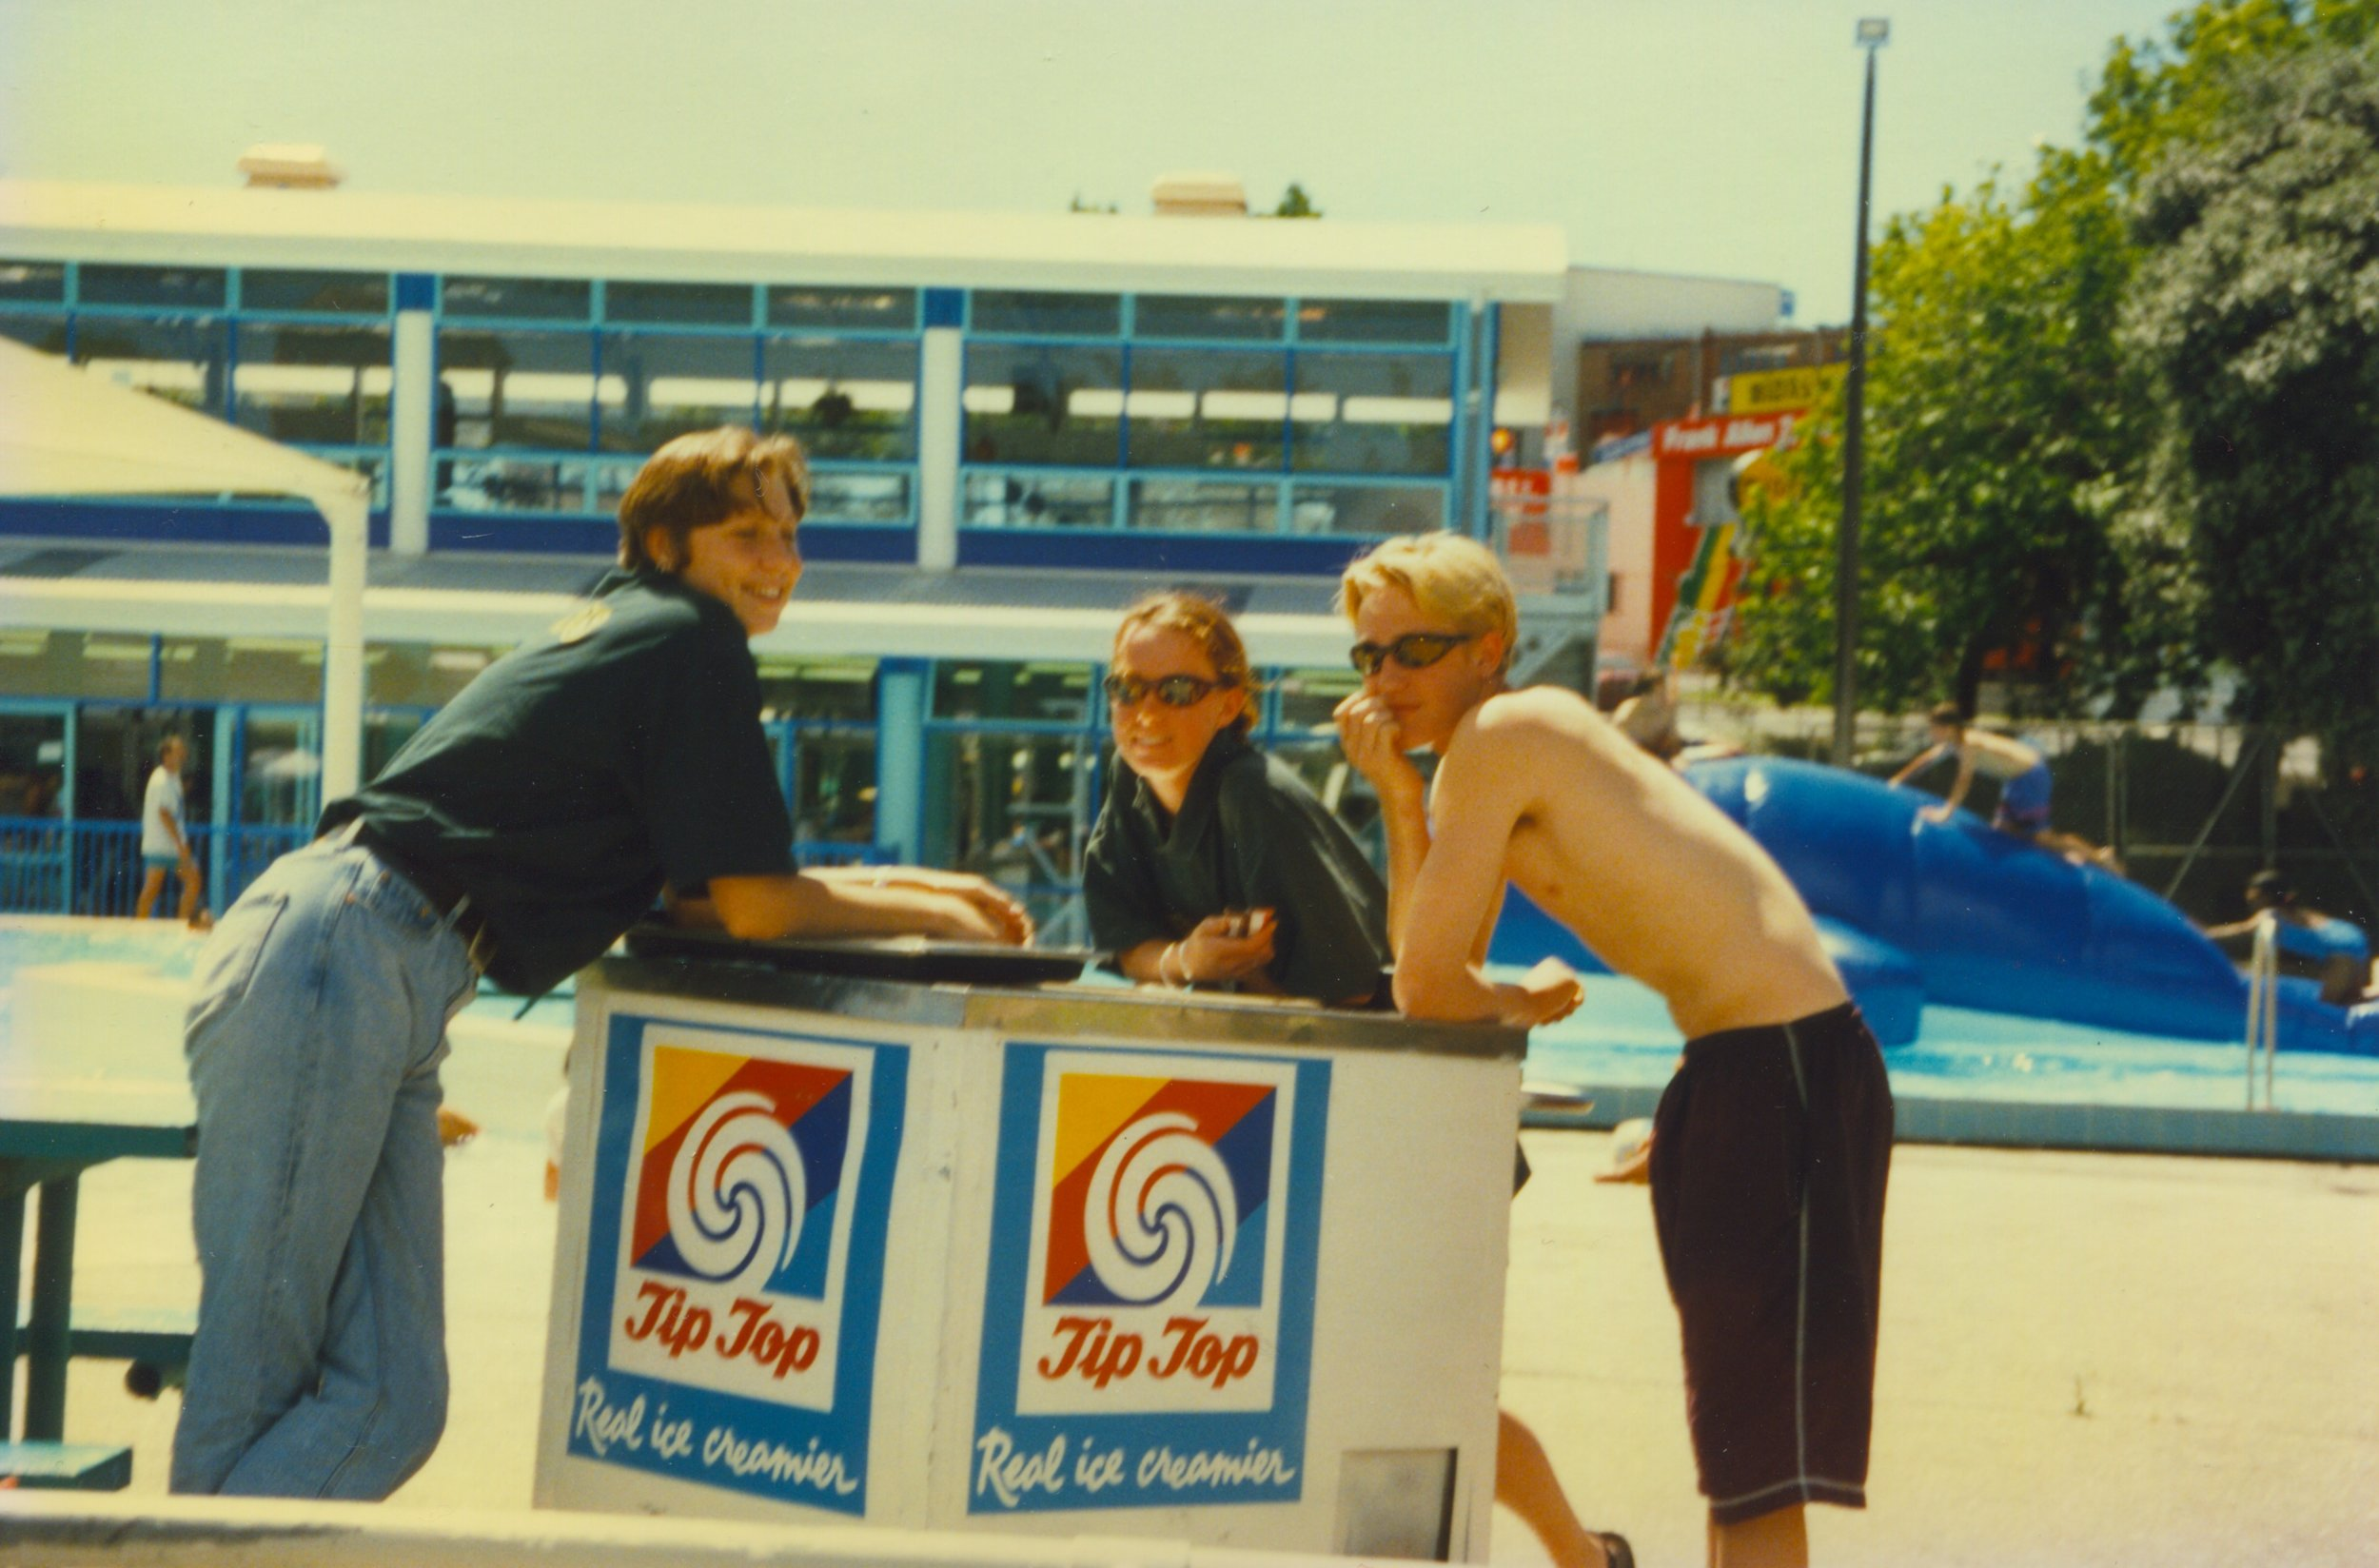 Dudes chillin' out at the Panmure Lagoon Pools. Image credit: Panmure Lagoon Pools. Late 80s/90s.